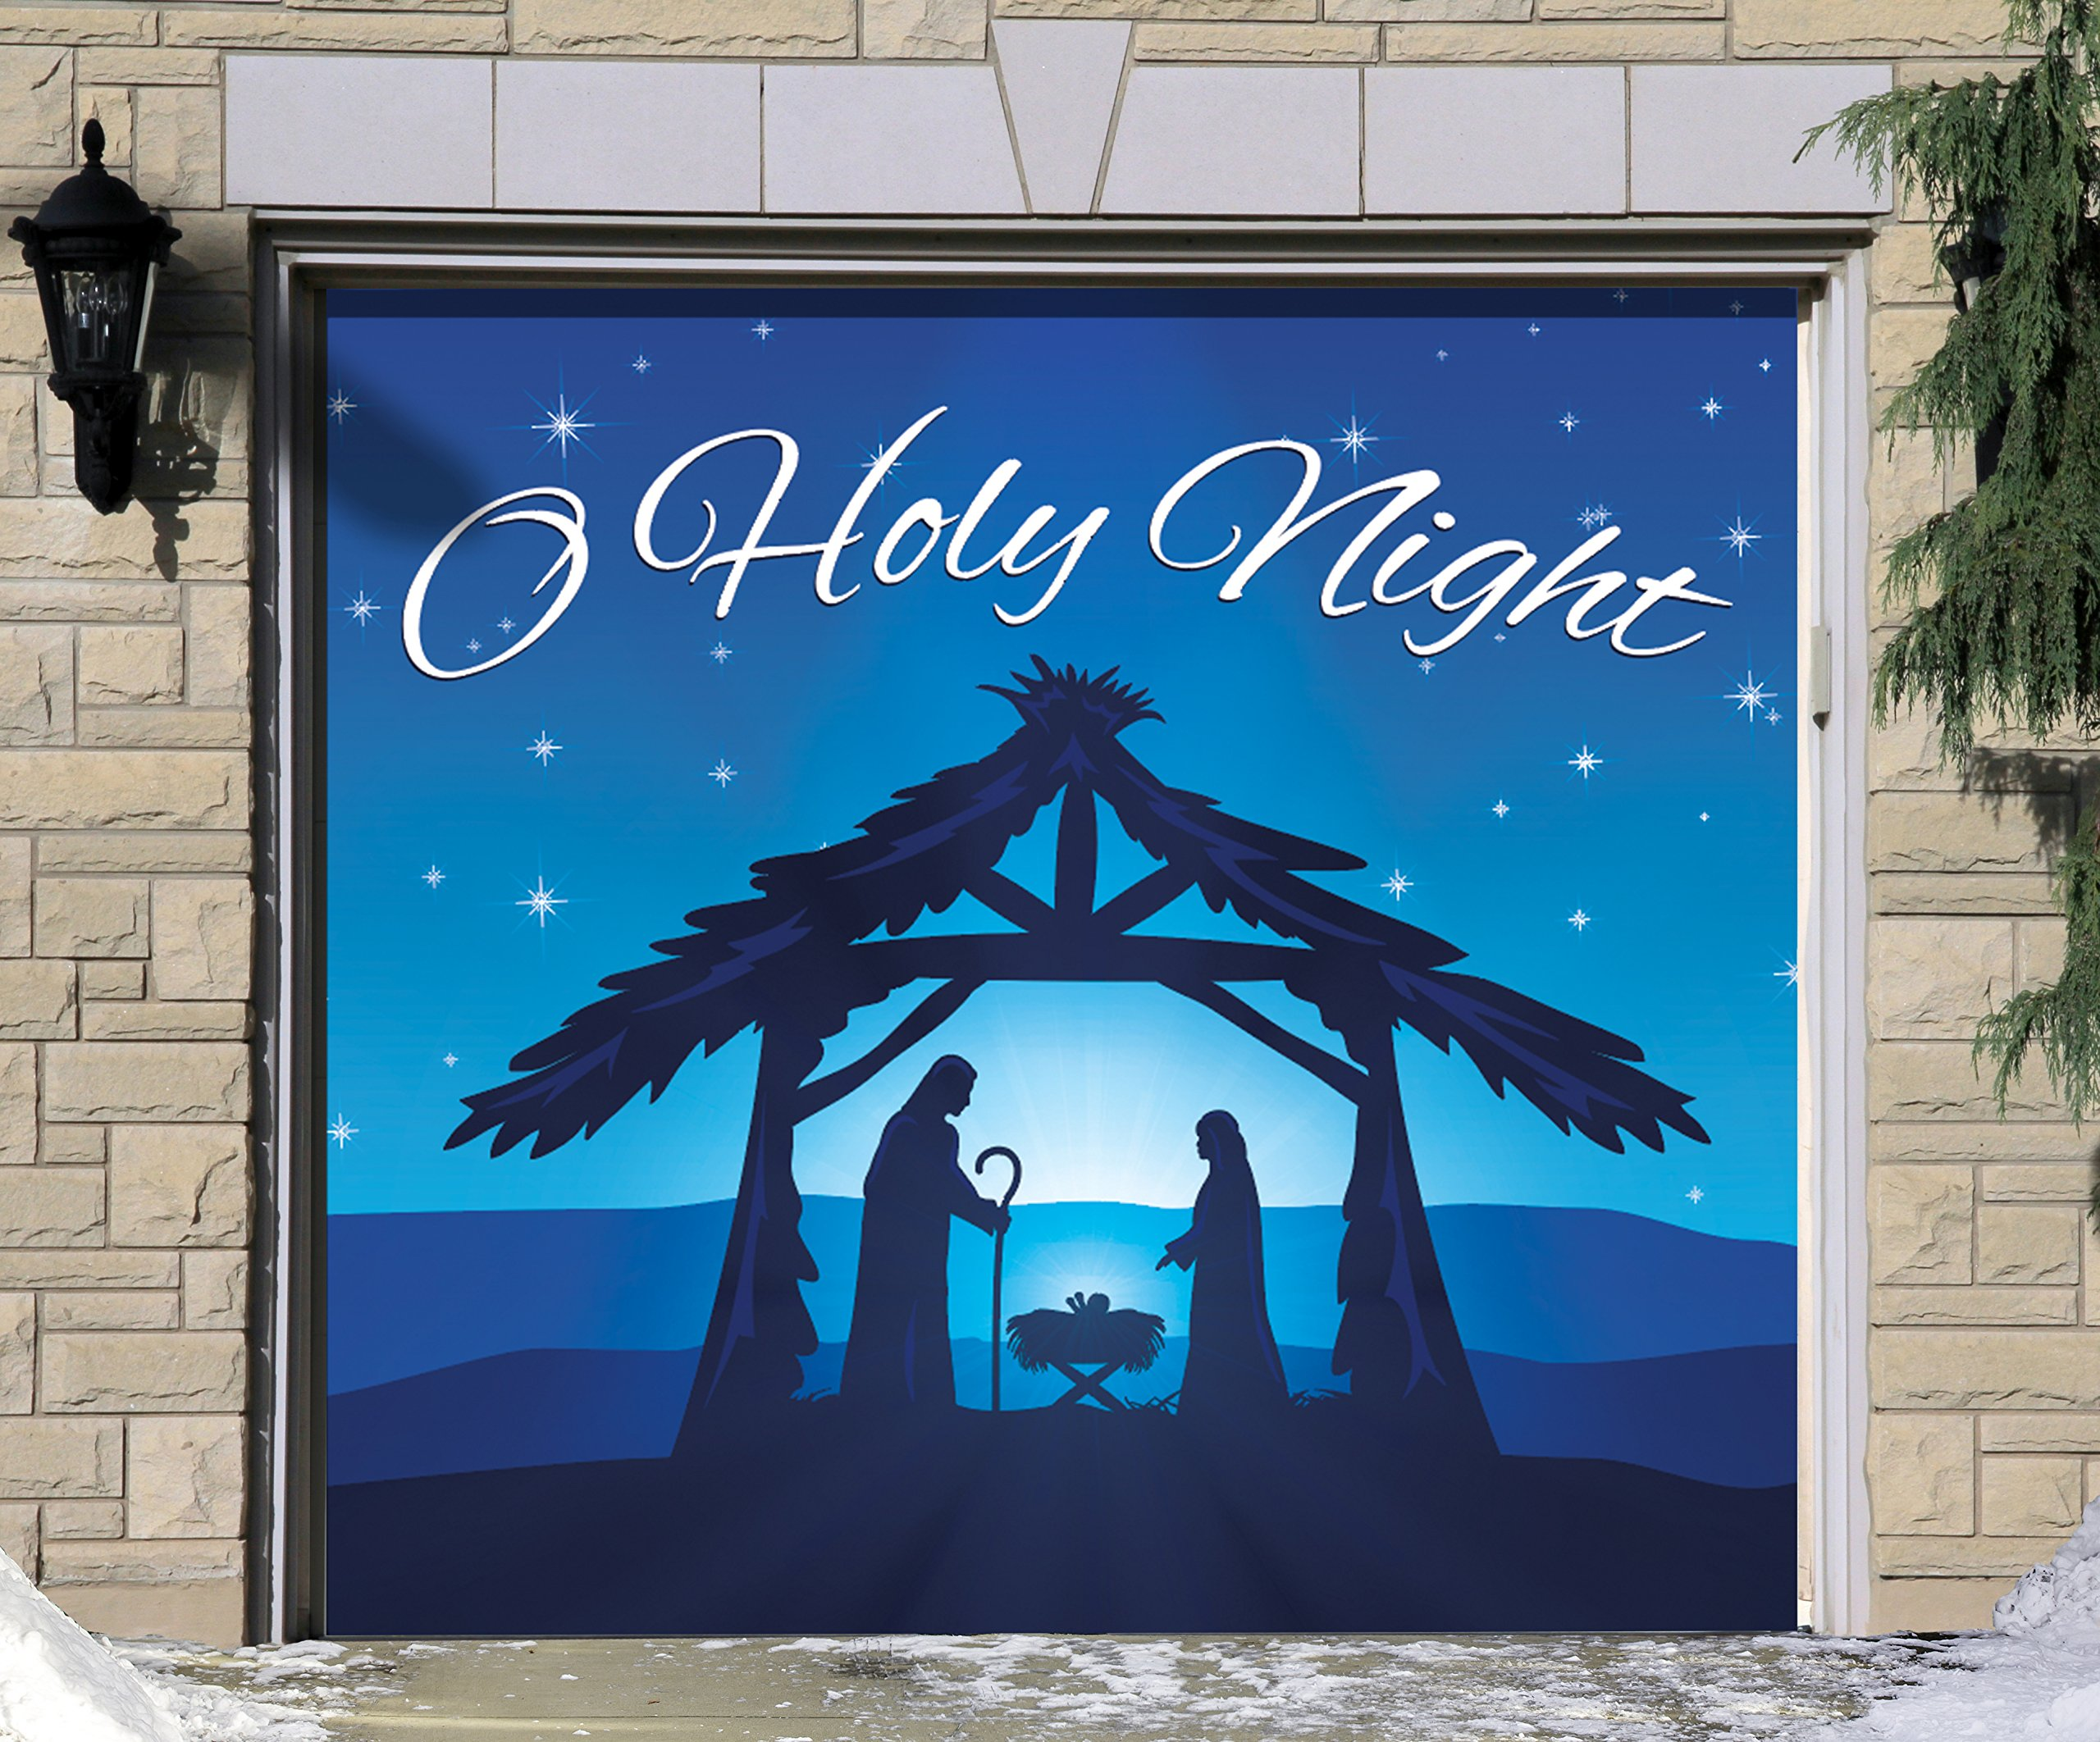 Outdoor Christmas Holiday Garage Door Banner Cover Mural Décoration - Nativity Scene O Holy Night - Outdoor Christmas Holiday Garage Door Banner Décor Sign 7'x8'